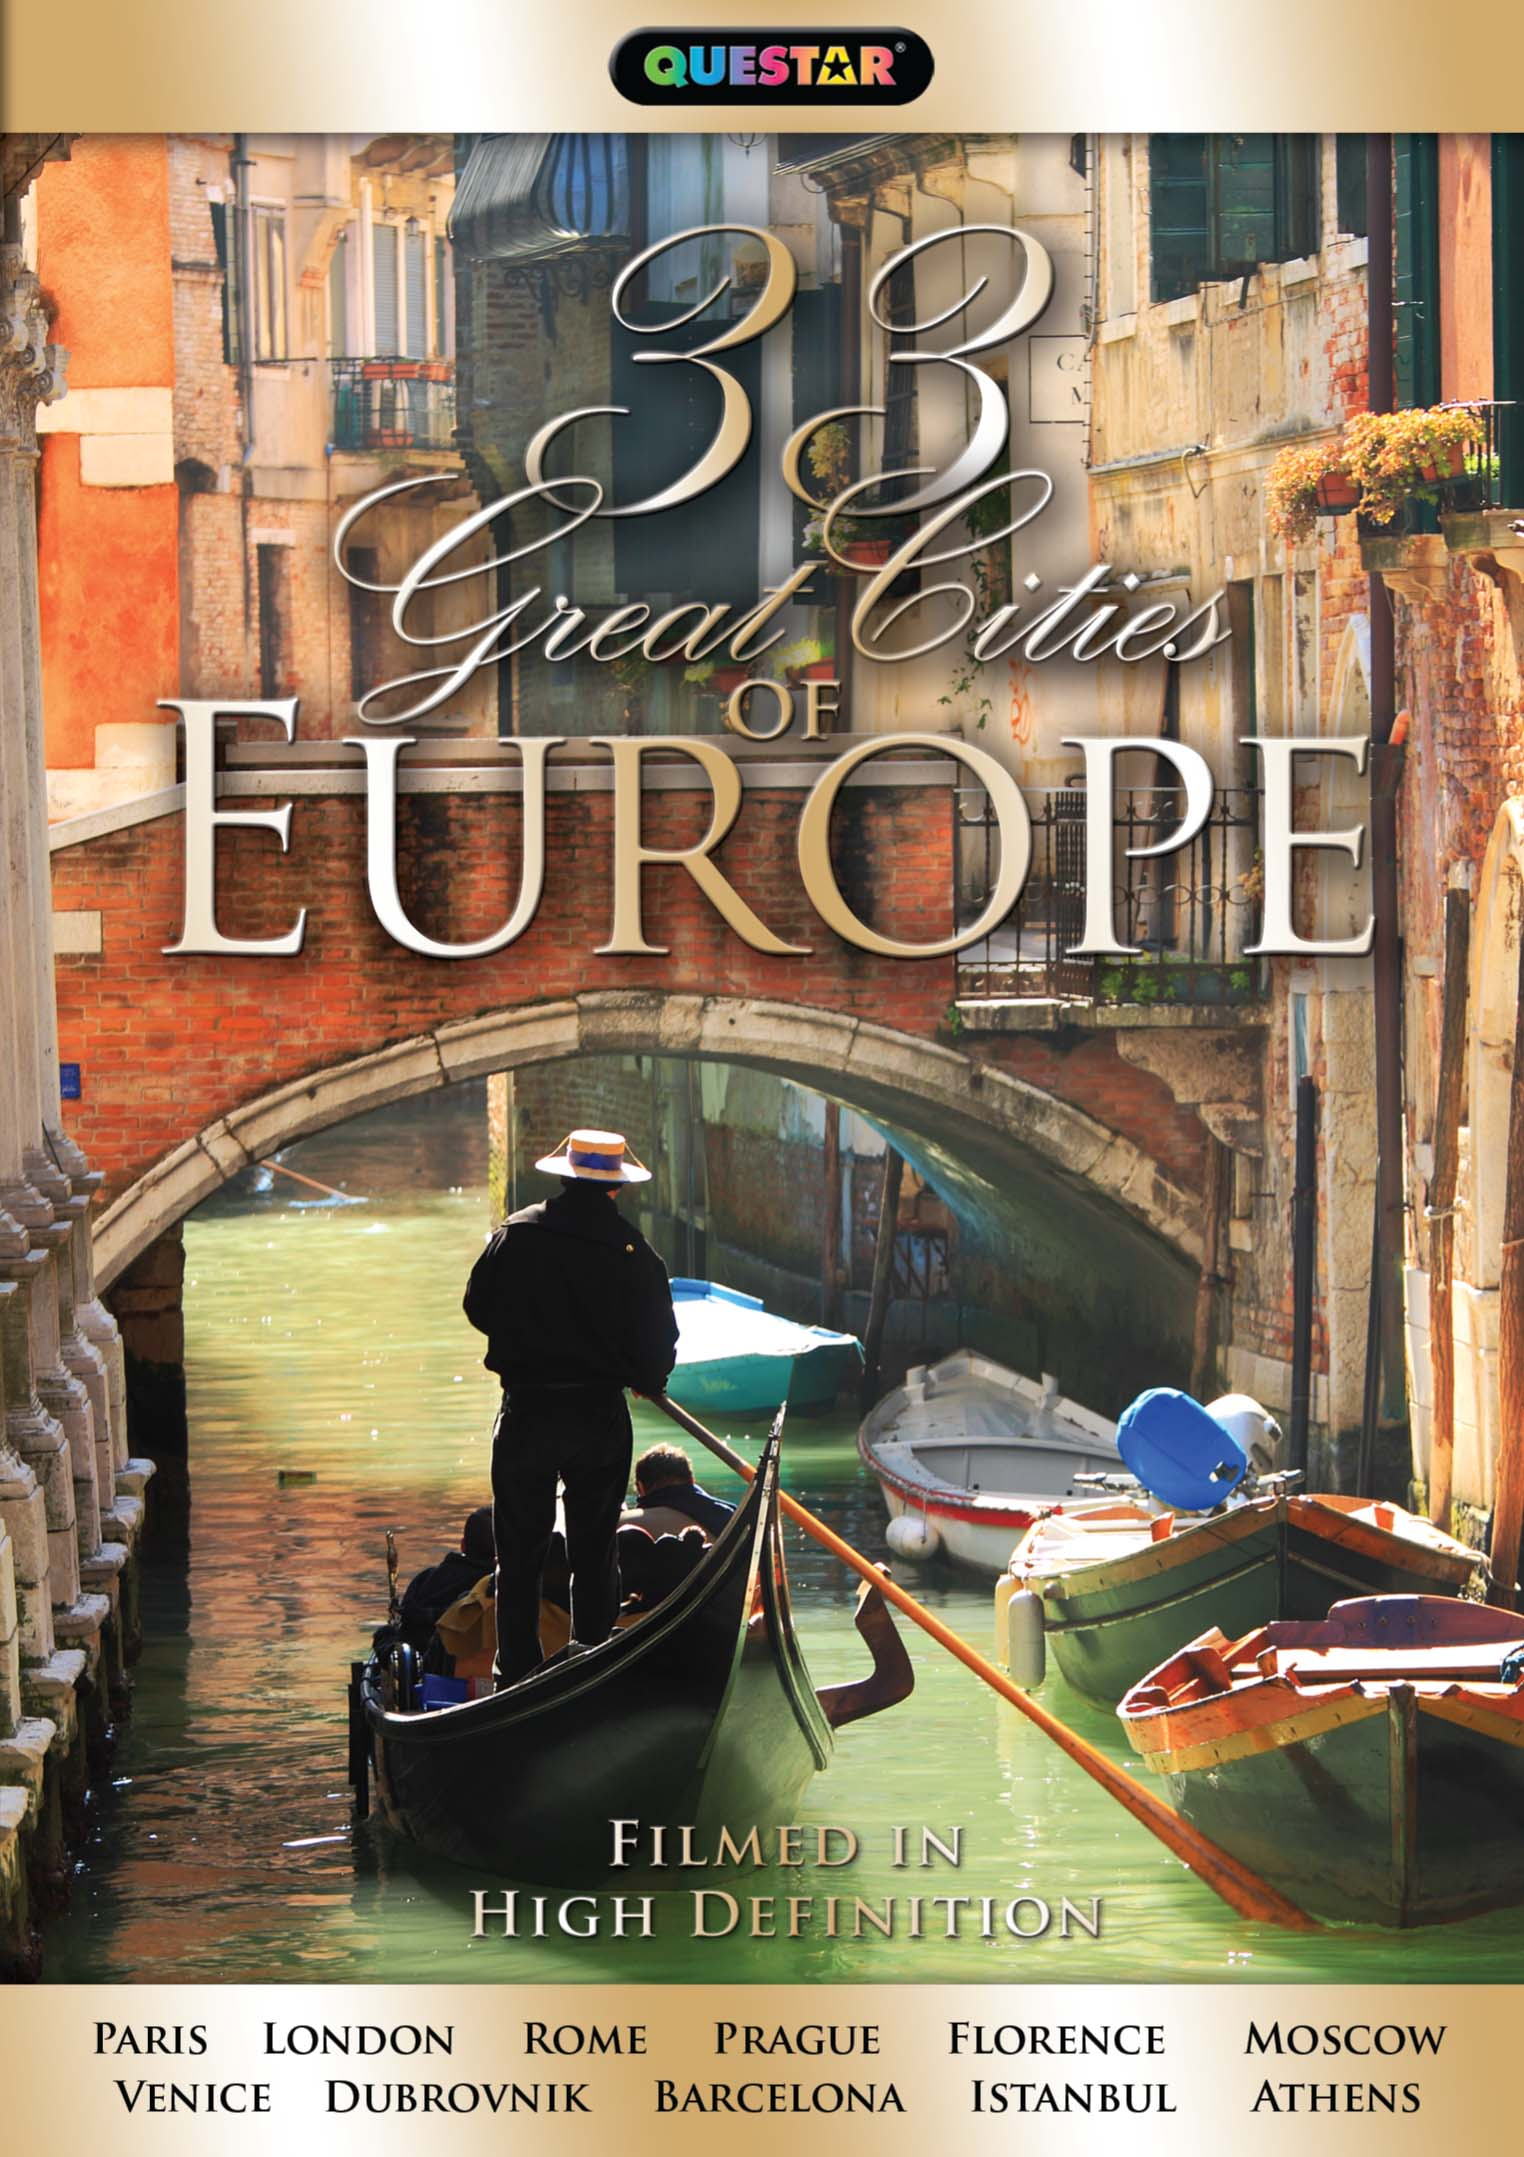 33 Great Cities of Europe